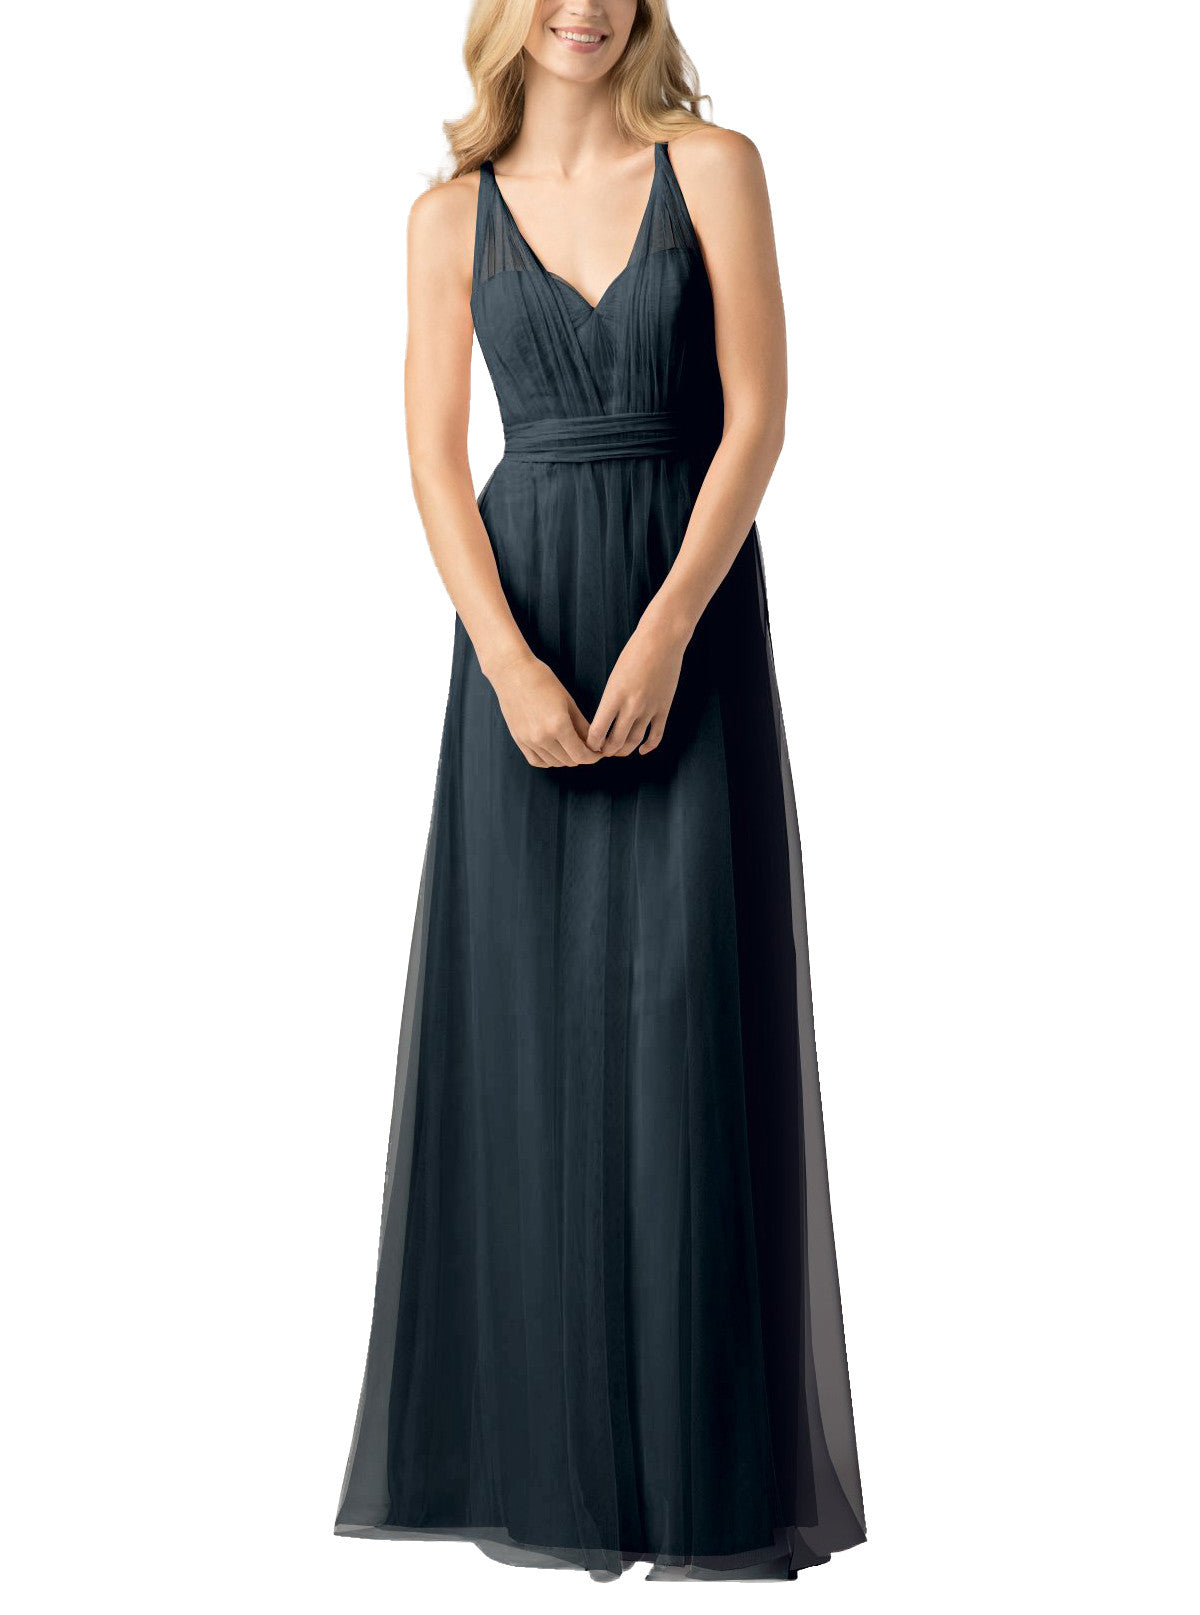 Wtoo by watters style 852i convertible bridesmaid dress brideside wtoo by watters style 852i convertible ombrellifo Choice Image